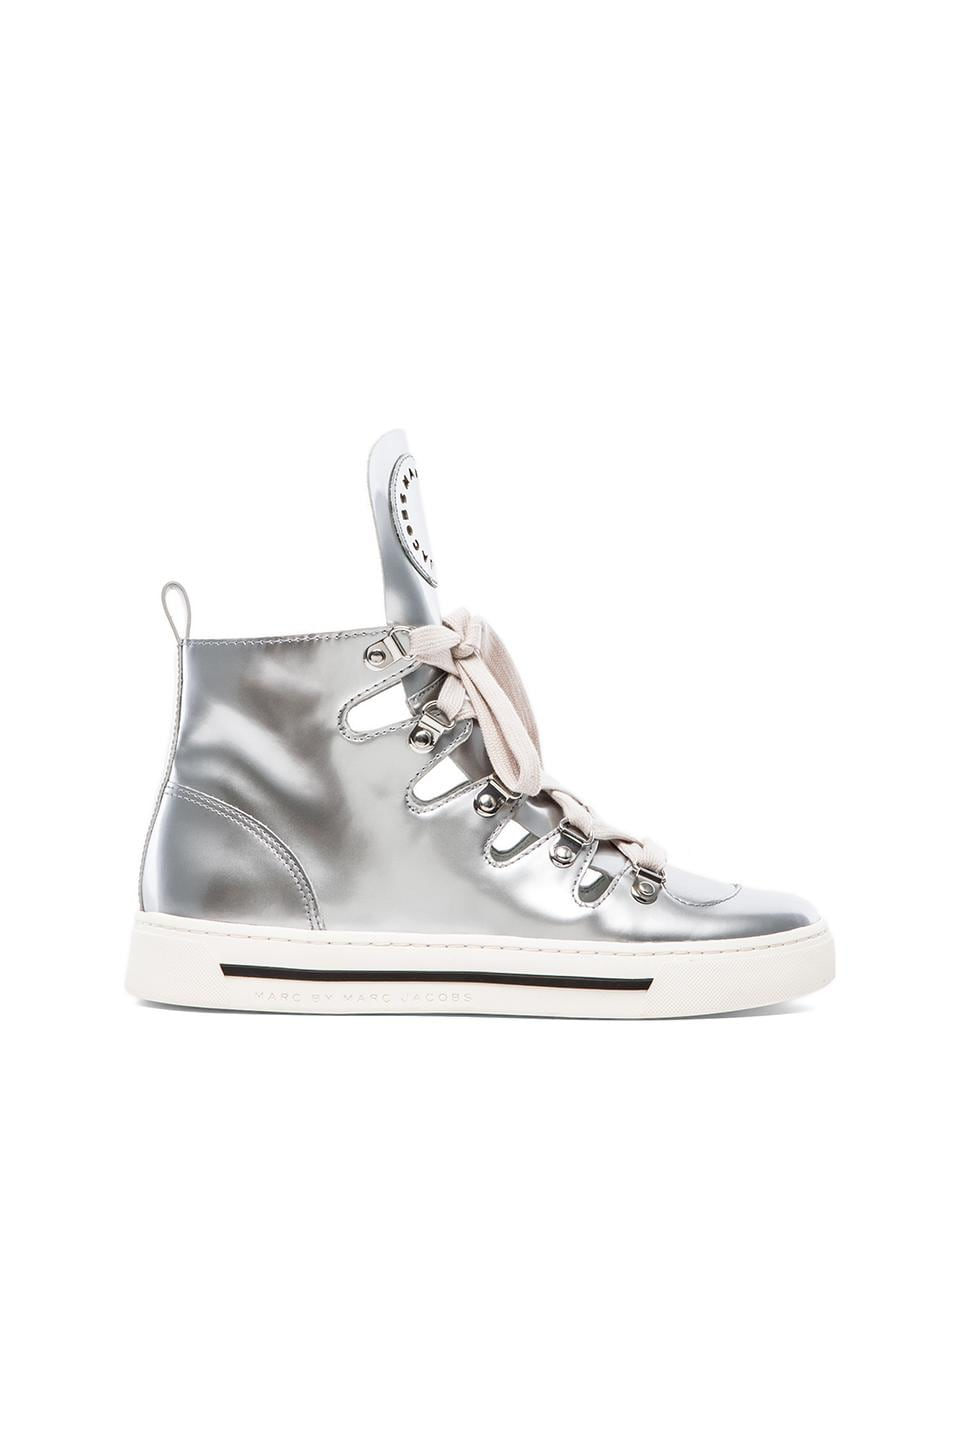 Marc by Marc Jacobs Cute Kicks Reflective Sneaker in Silver